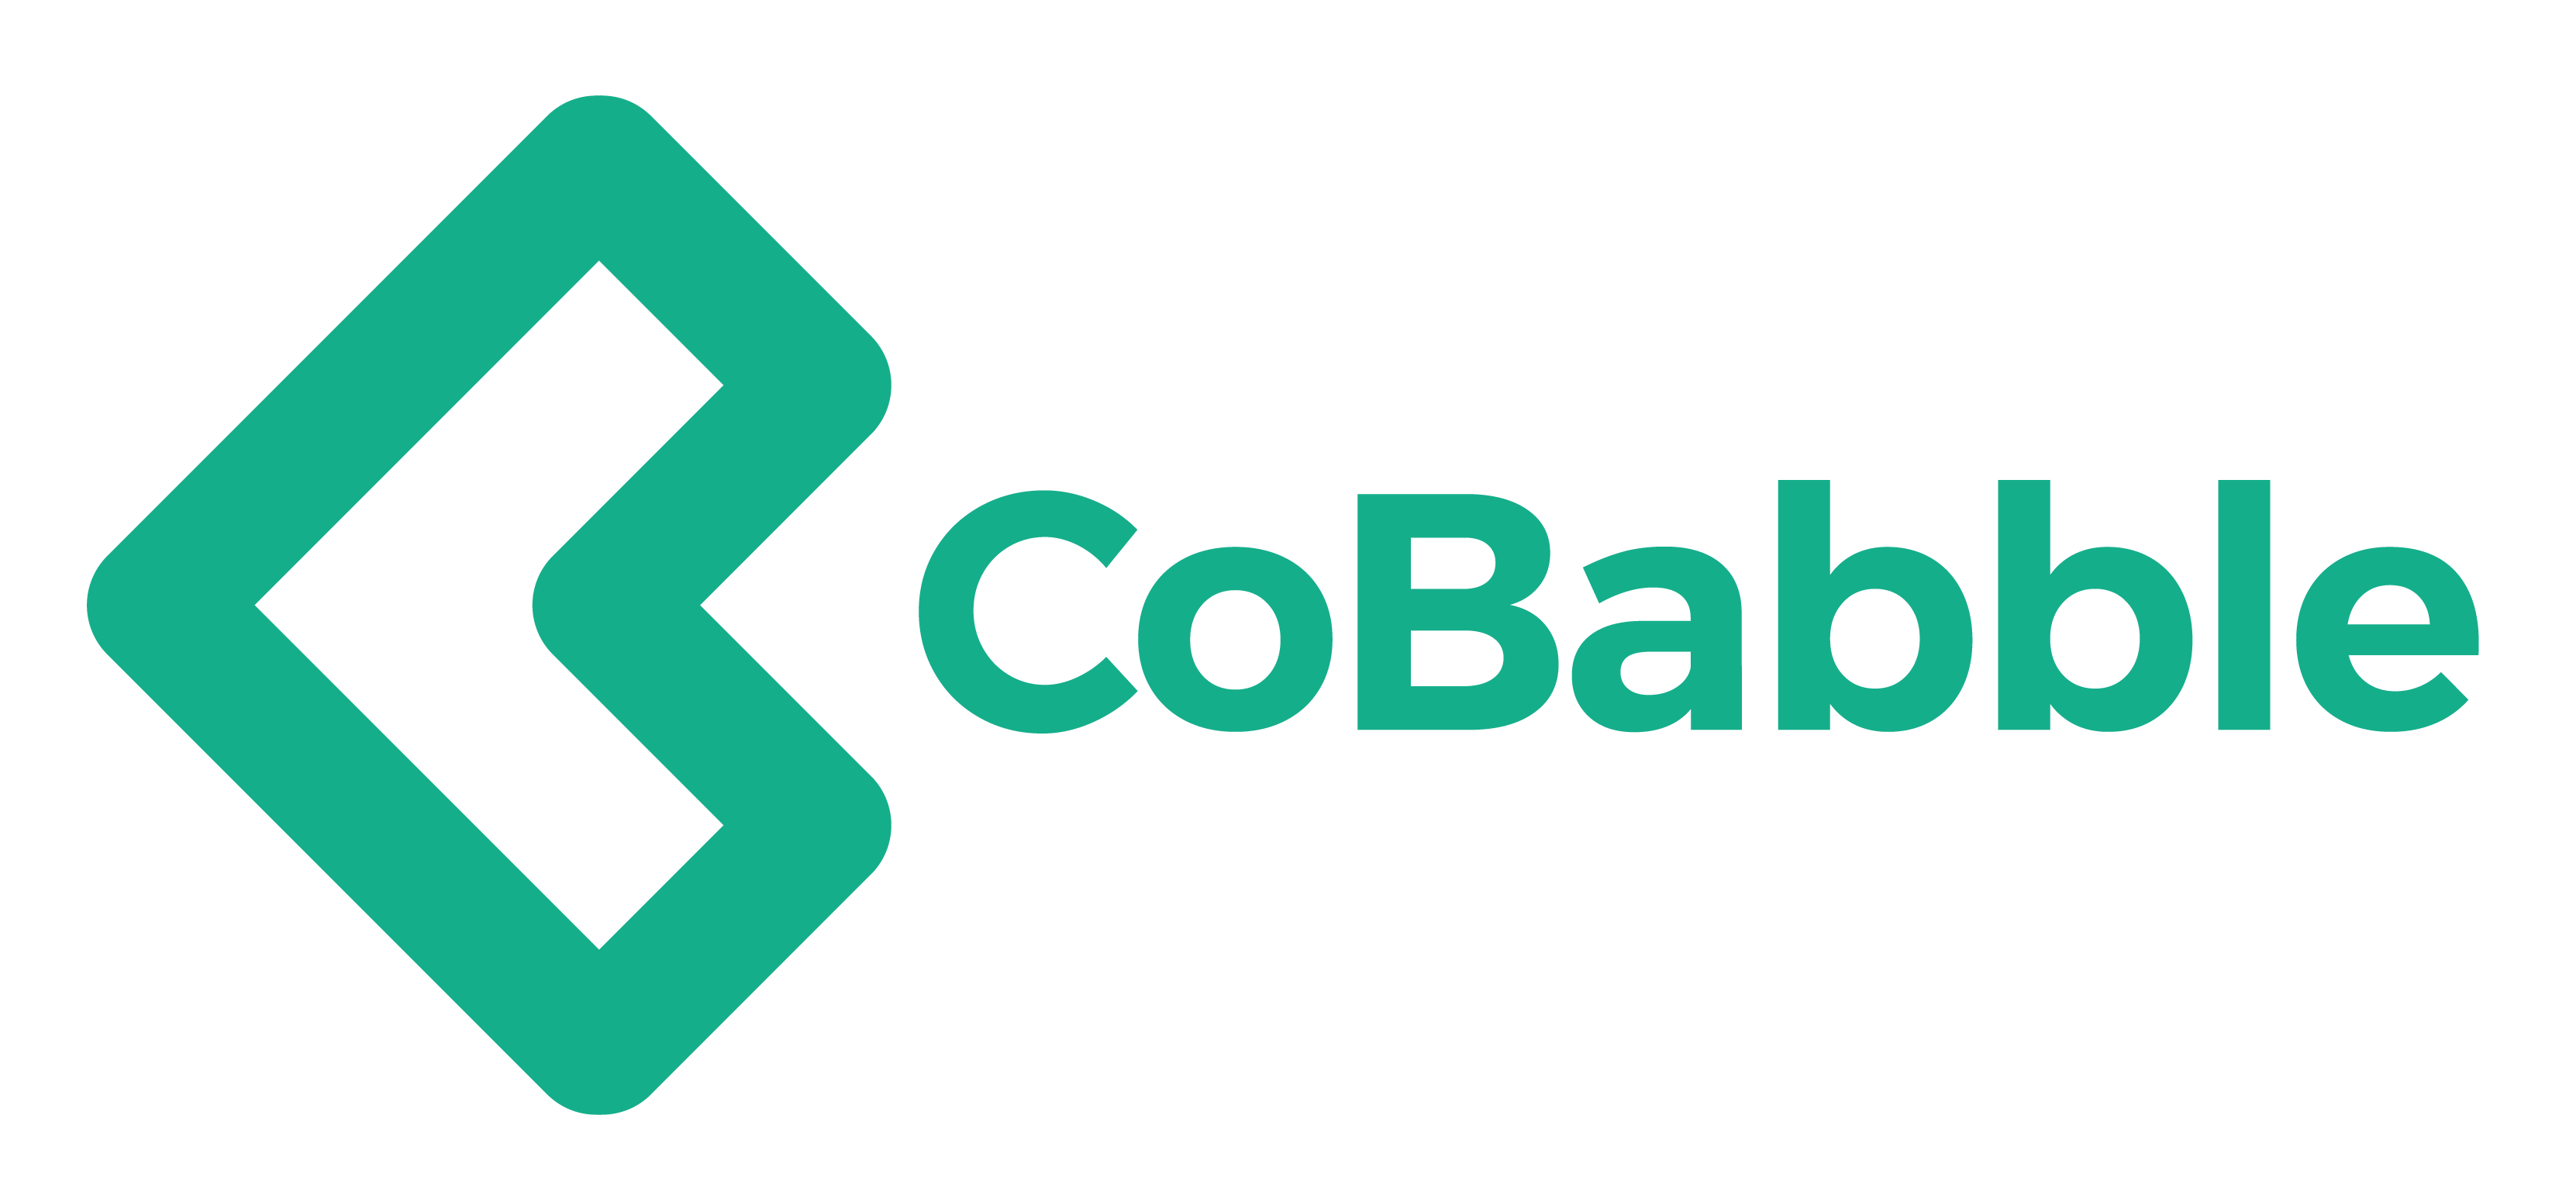 CoBabble Support  Help Centre home page